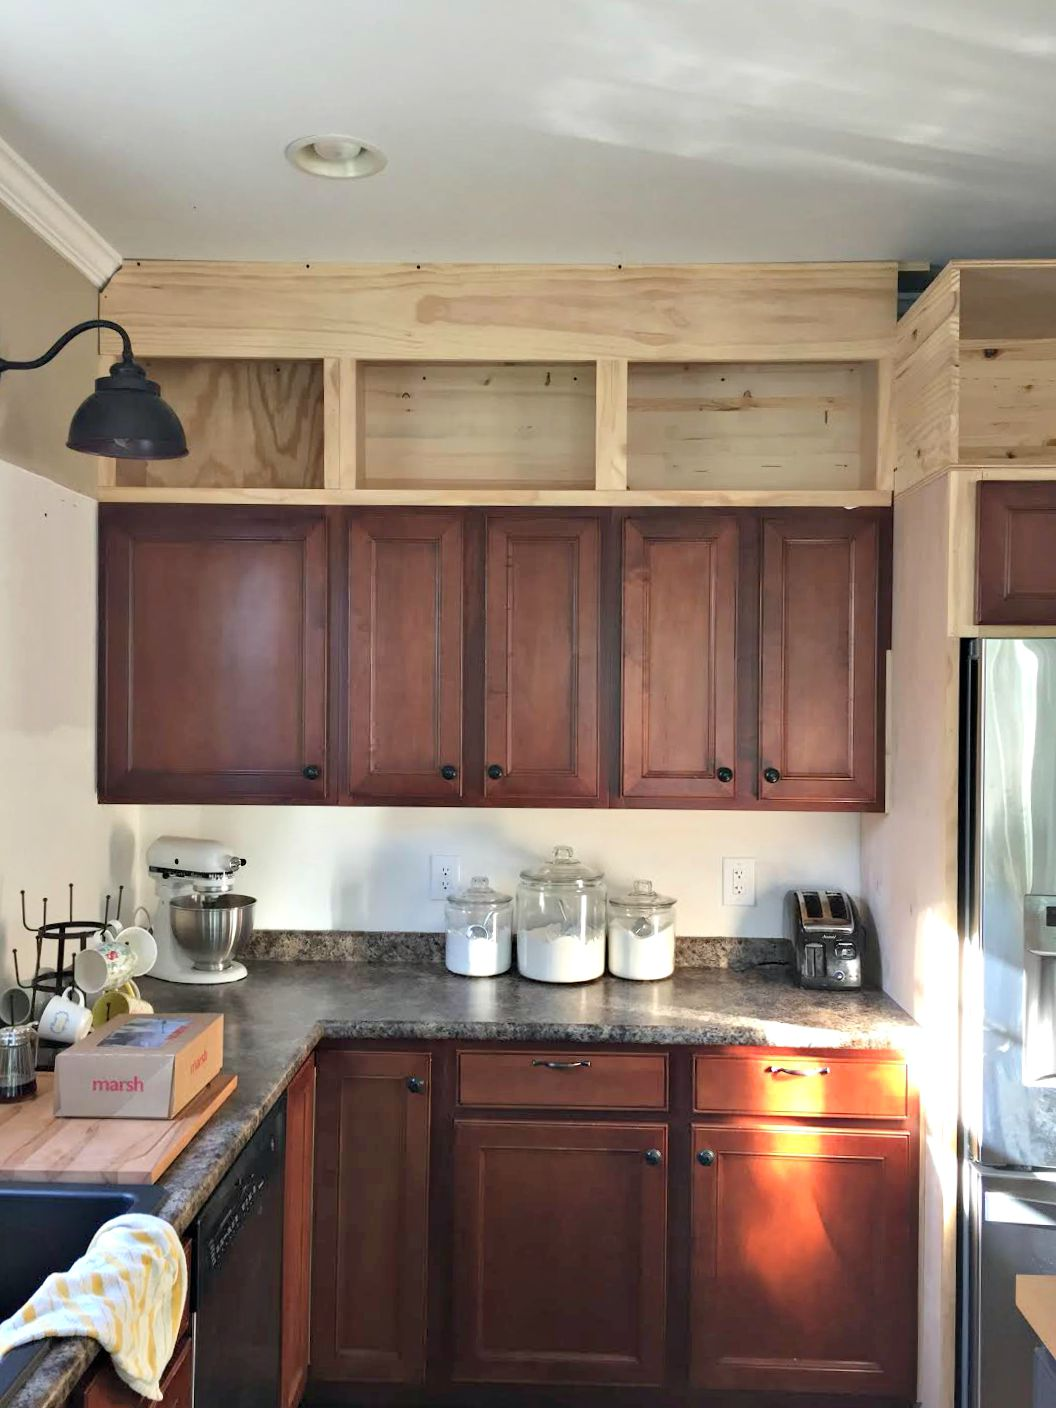 adding shelves to kitchen cabinets facets building up the ceiling from thrifty decor chick